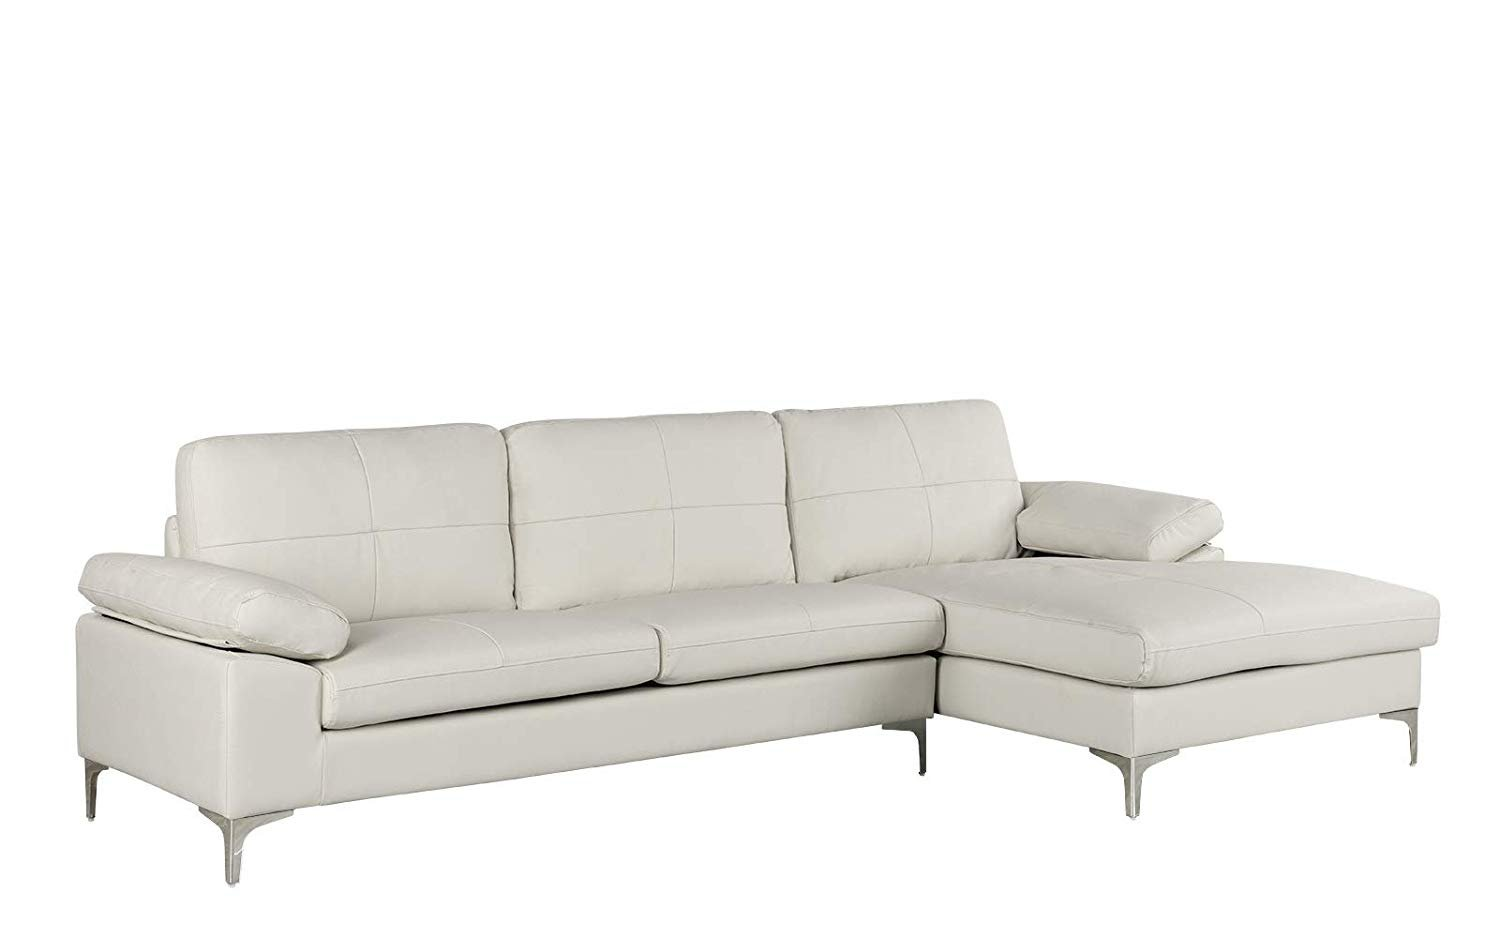 leather sectional sofa l shape couch with chaise 108 7 w inches white